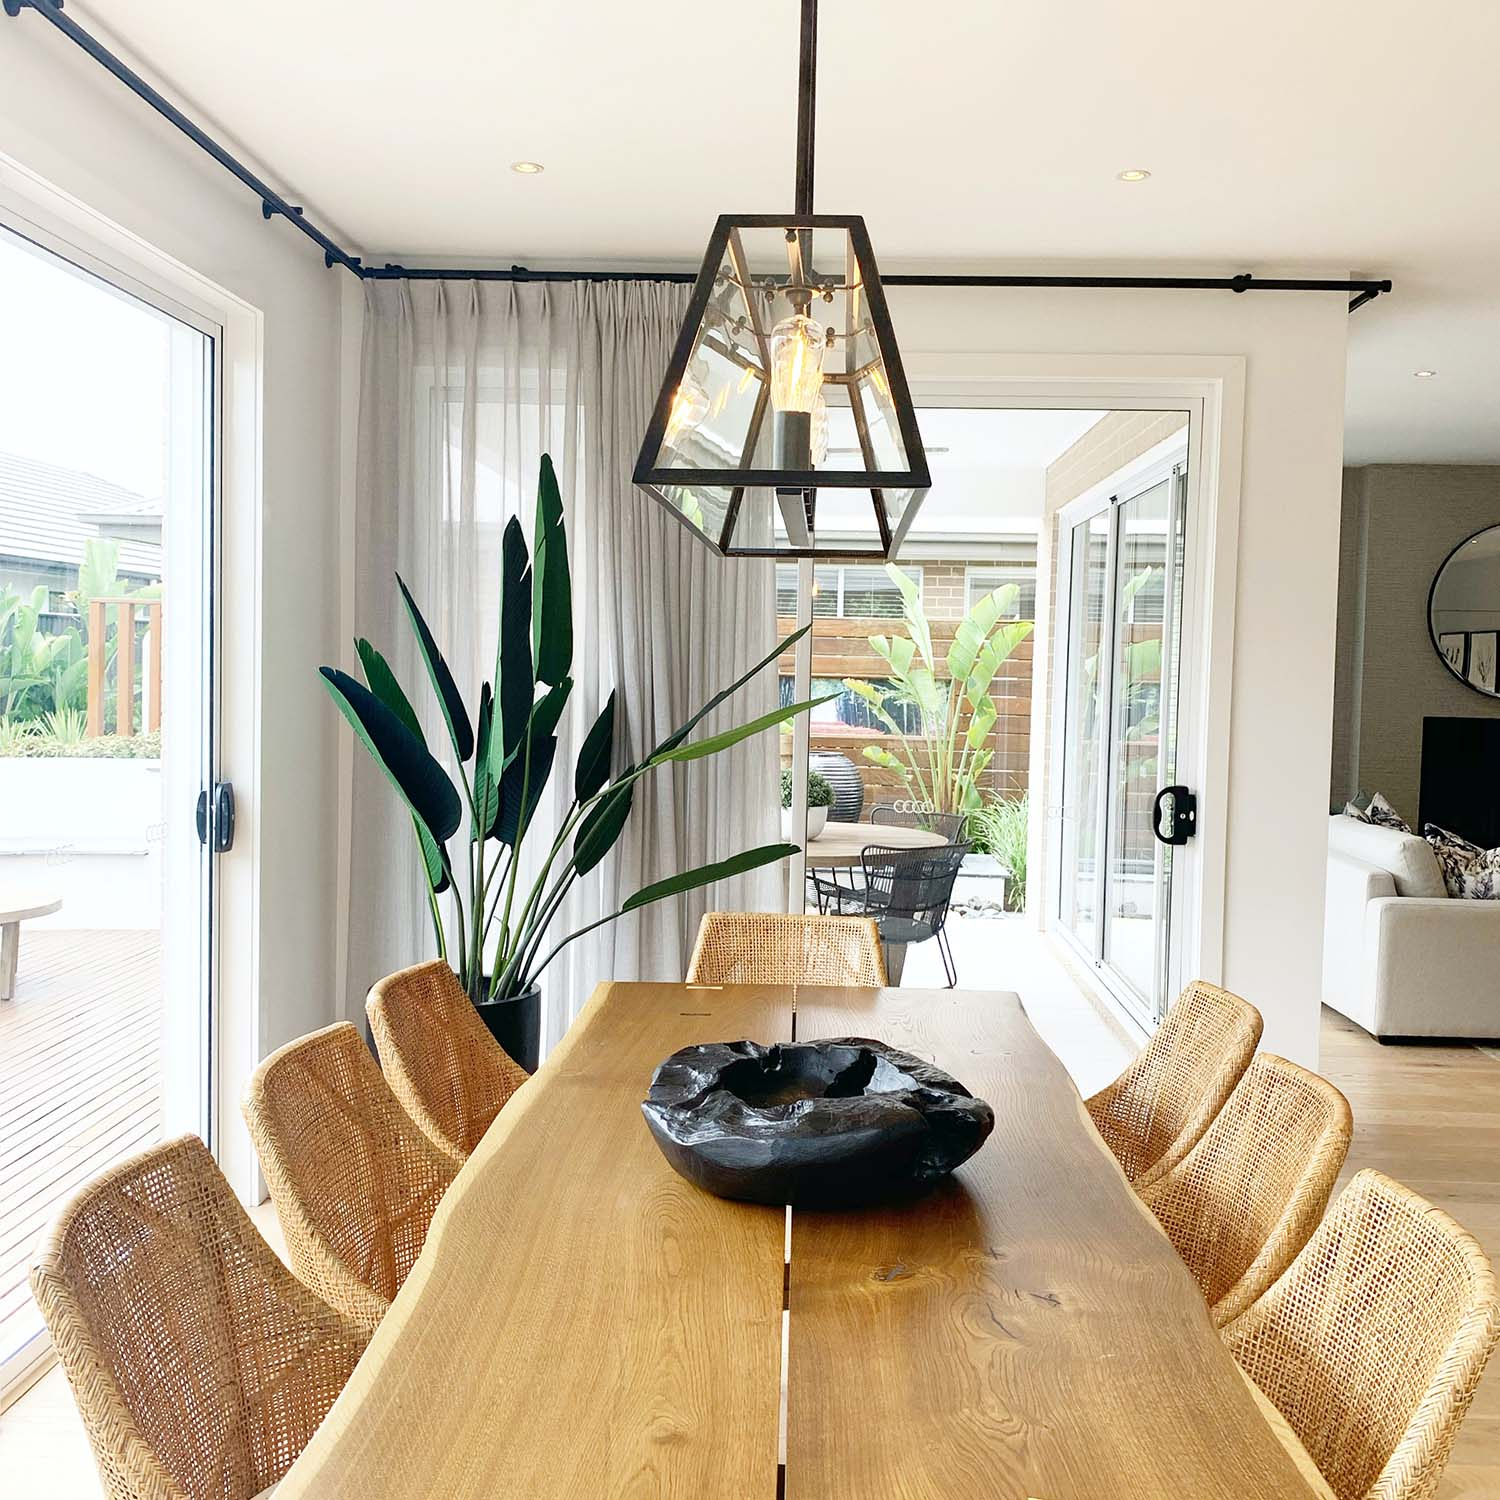 Significant Features of a Stylish Dining Room